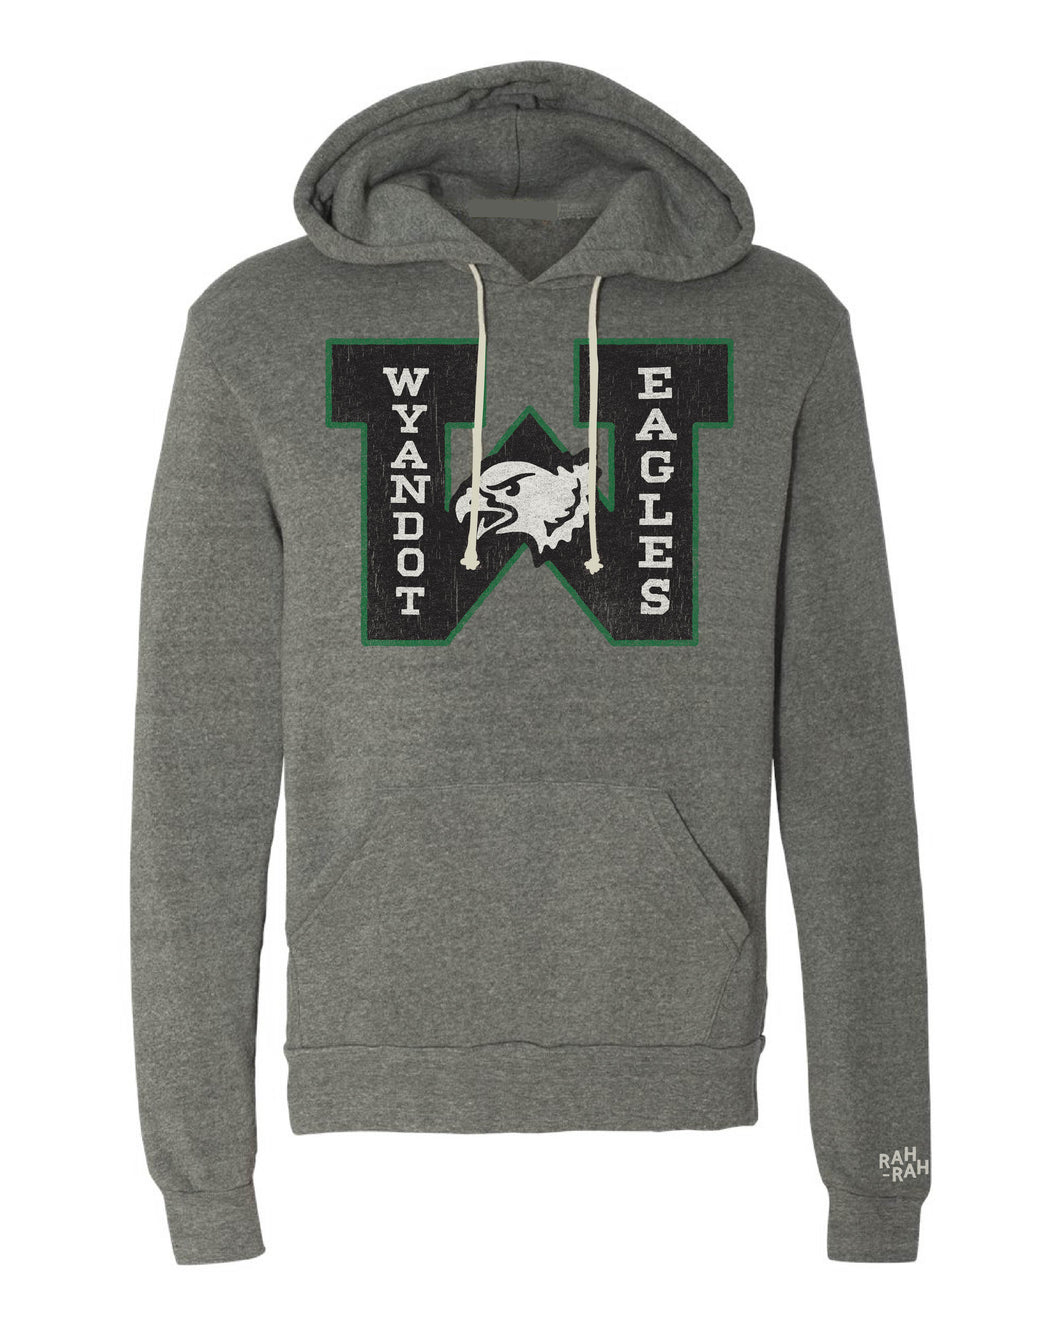 Wyandot Eagles Block Adult Unisex Hoodie